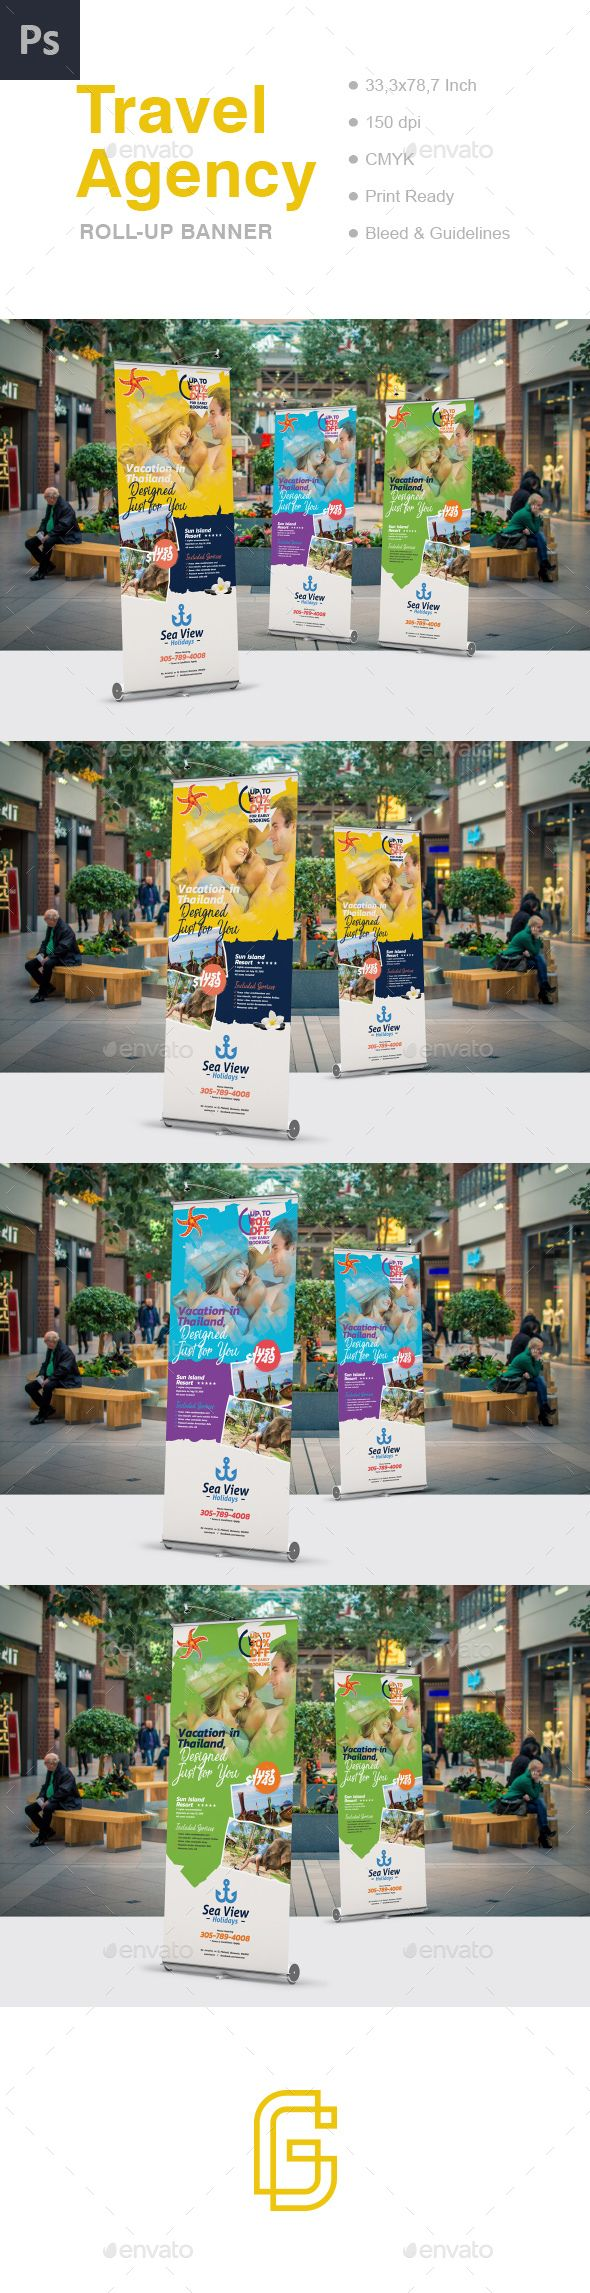 Travel Roll-Up Banner Template PSD